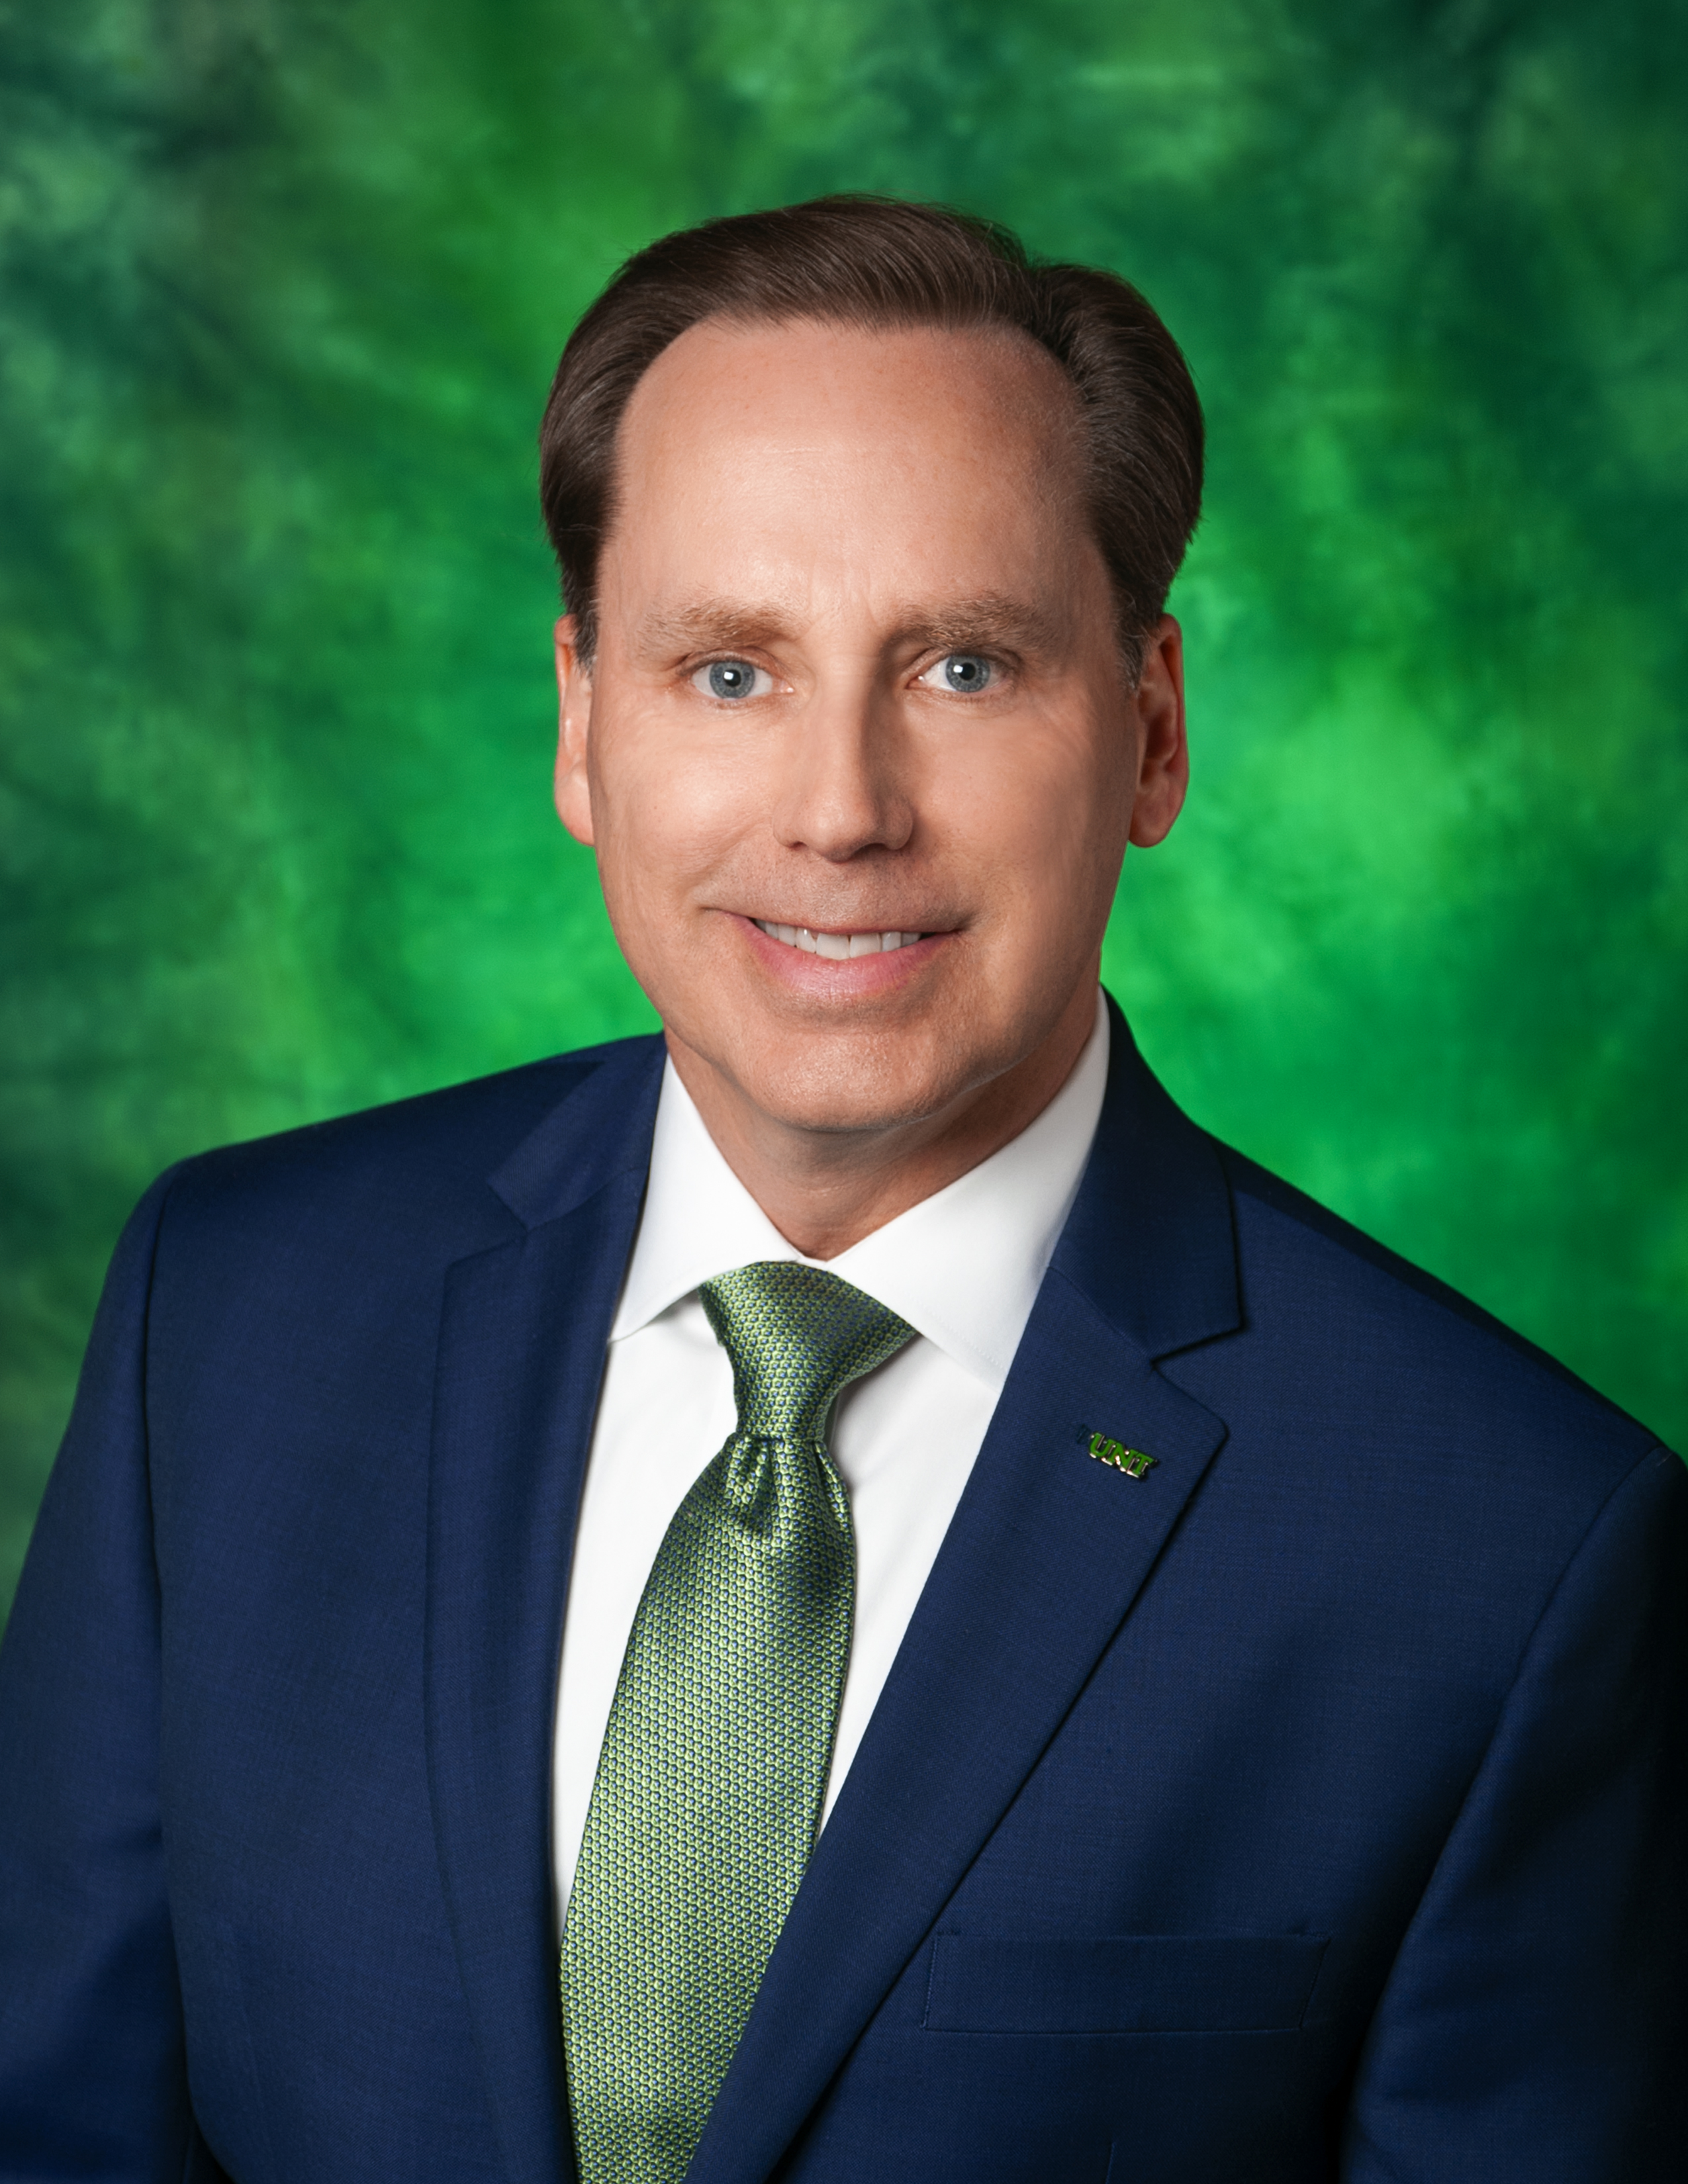 James Berscheidt, UNT vice president for marketing and communications